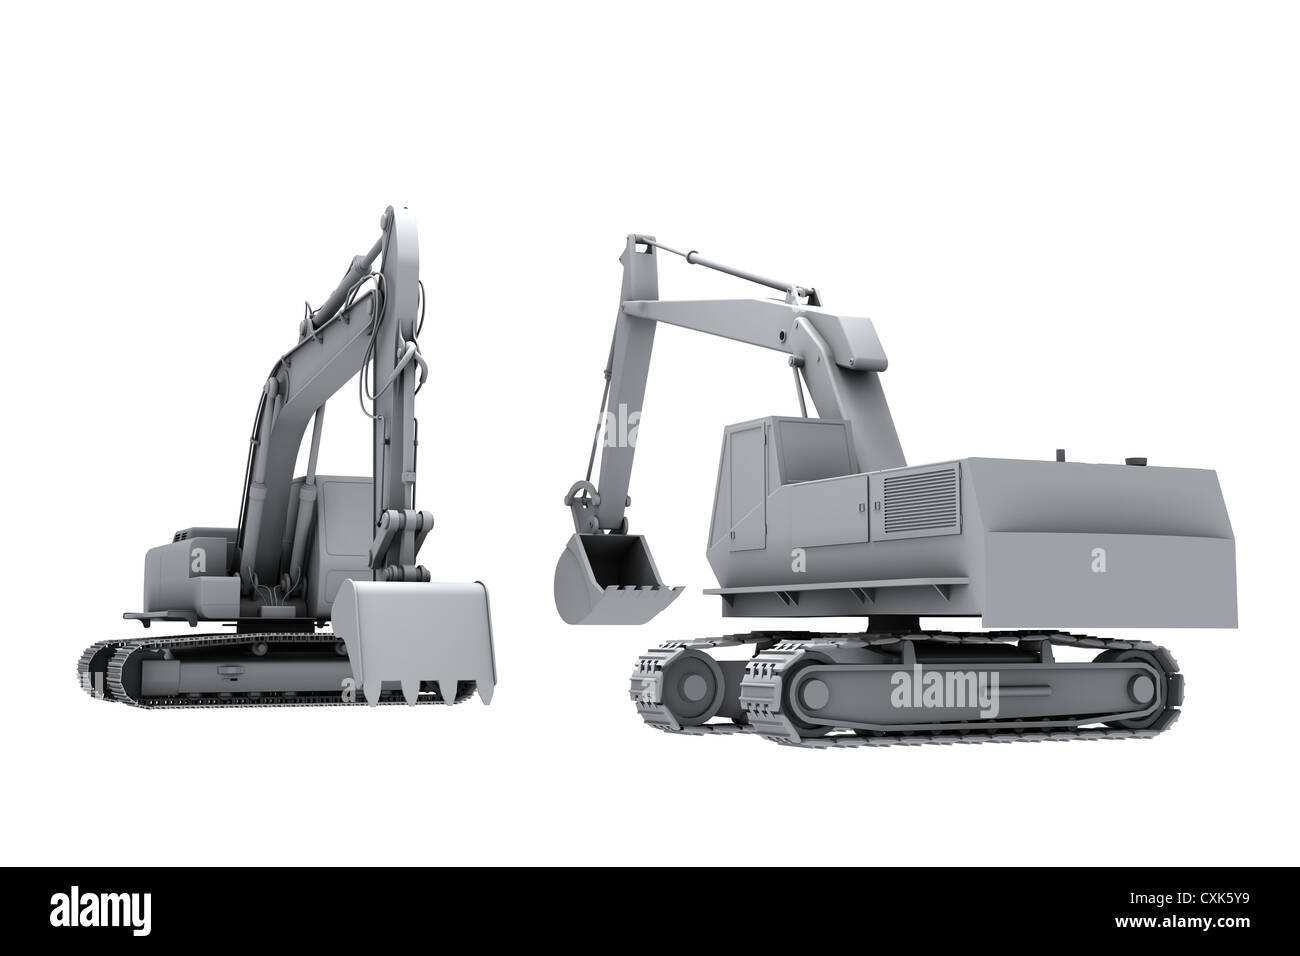 Grey model of the diggers - Stock Image